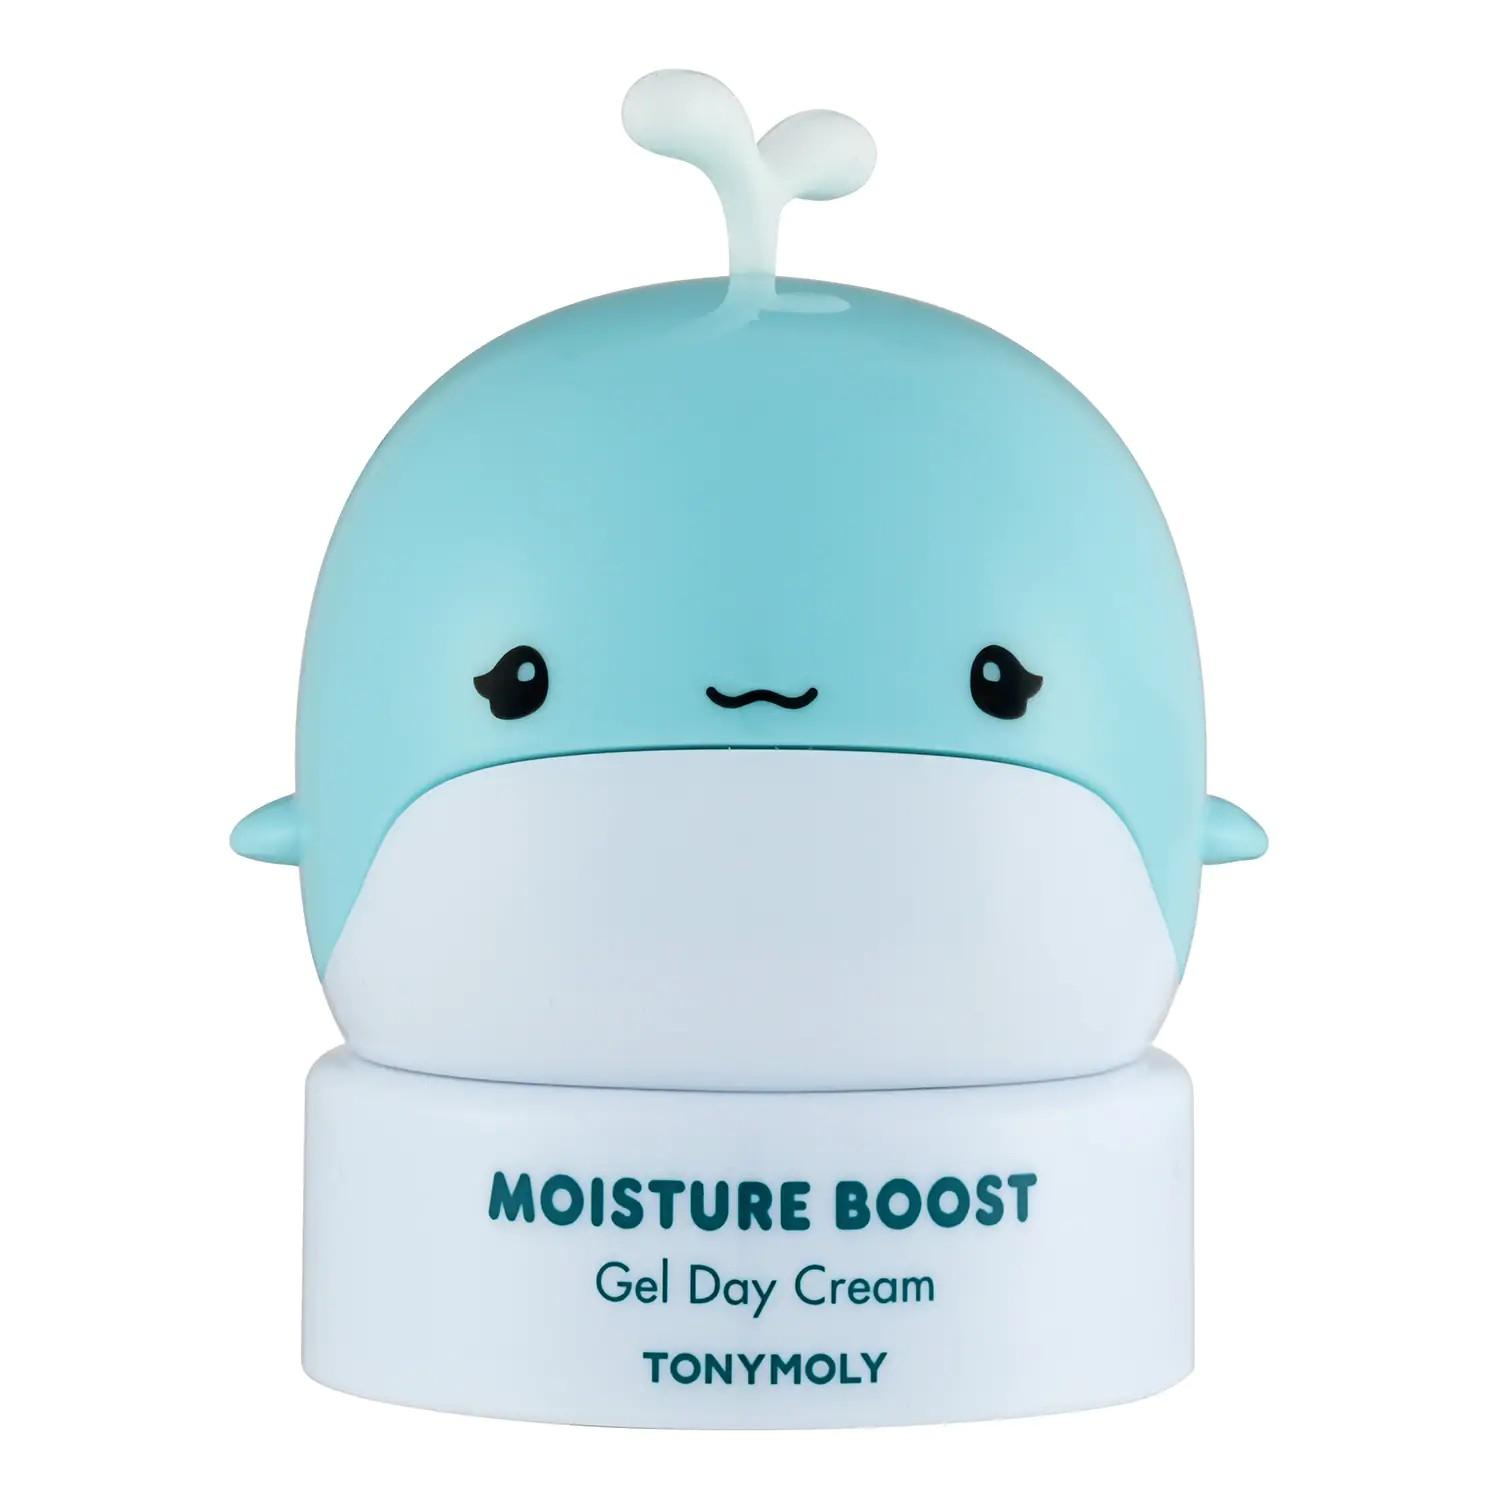 Moisture Boost Gel Day Cream de Tonymoly